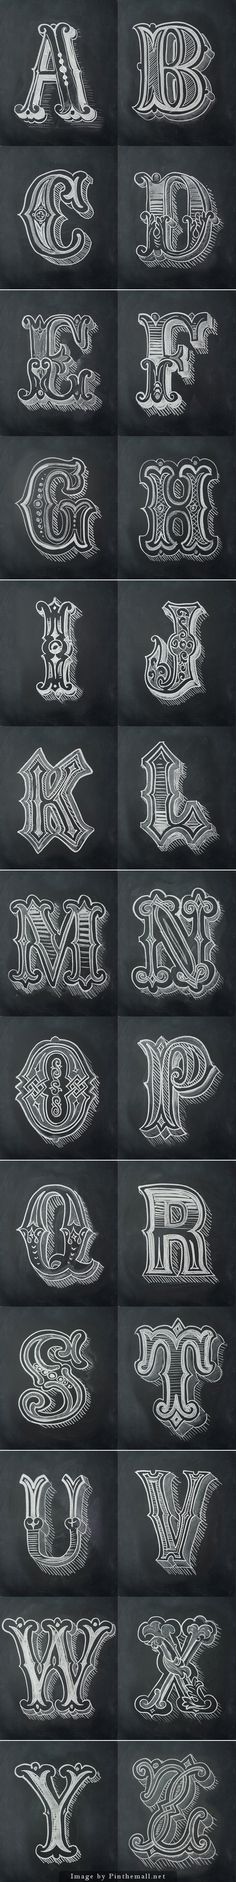 Chalk Alphabet by Antonio Rodrigues Jr. - a grouped images picture - Pin Them. - # Chalk Alphabet by Antonio Rodrigues Jr. - a grouped images picture - Pin Them. Calligraphy Letters, Typography Letters, Typography Design, Typography Poster, Learn Calligraphy, Chalkboard Lettering Alphabet, Fancy Fonts Alphabet, Caligraphy Alphabet, Letter Fonts